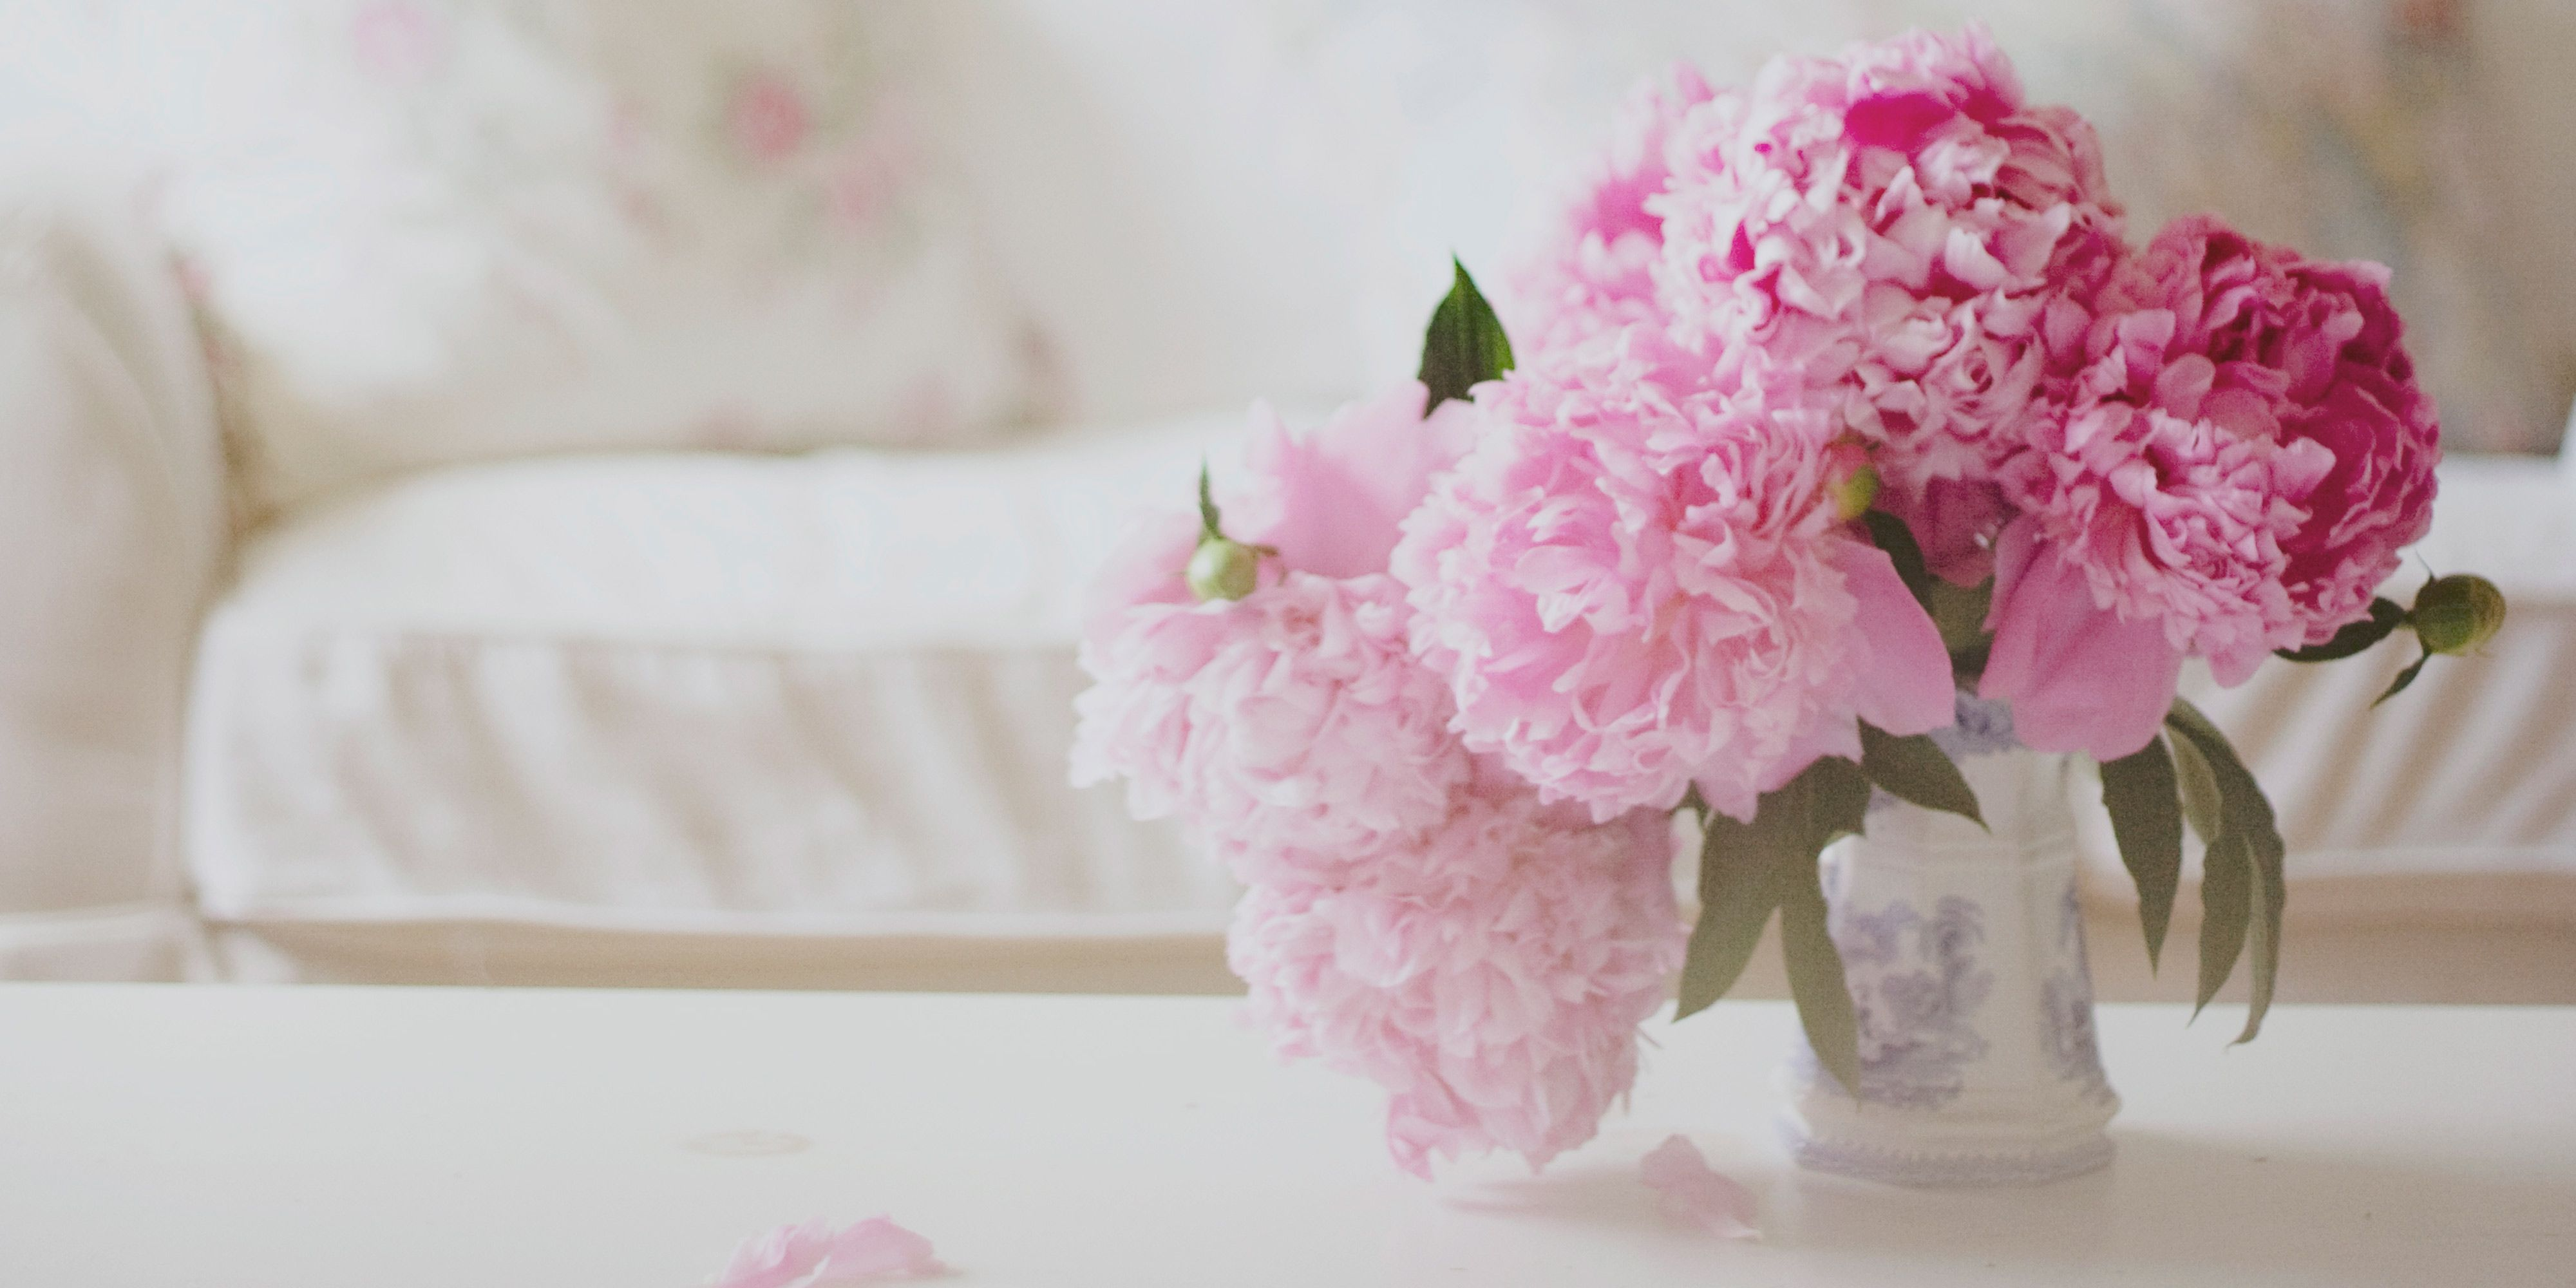 12 Facts About Peonies - History Of The Peony Flower